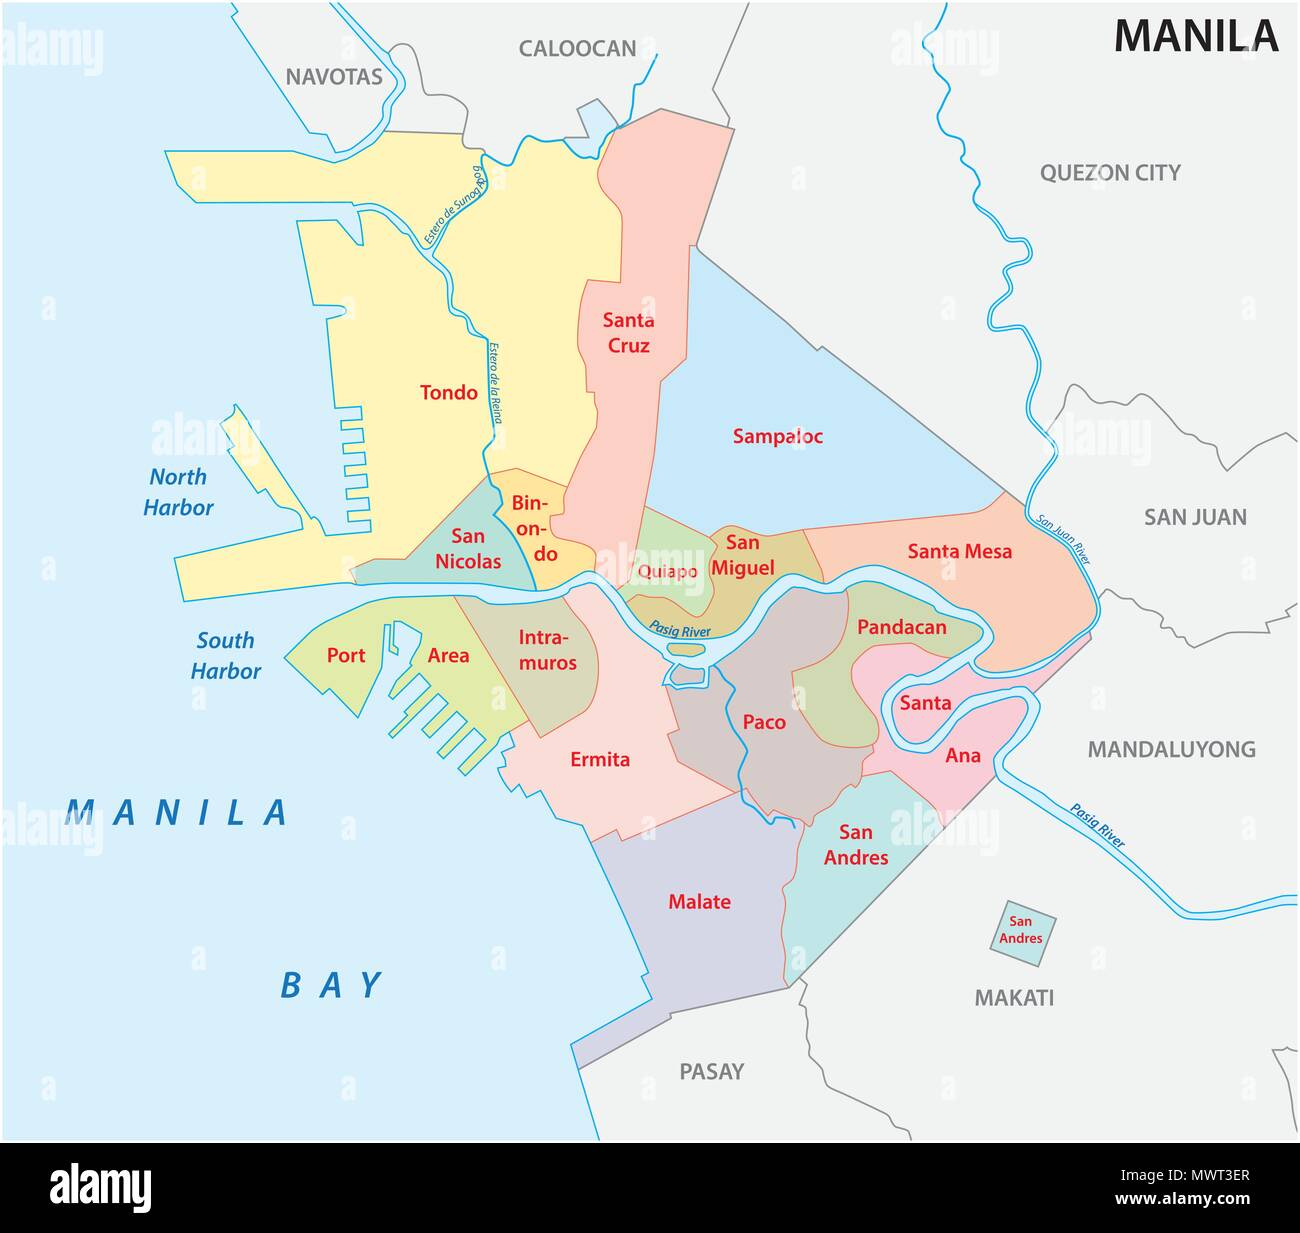 manila administrative and political vector map, philippines Stock Vector